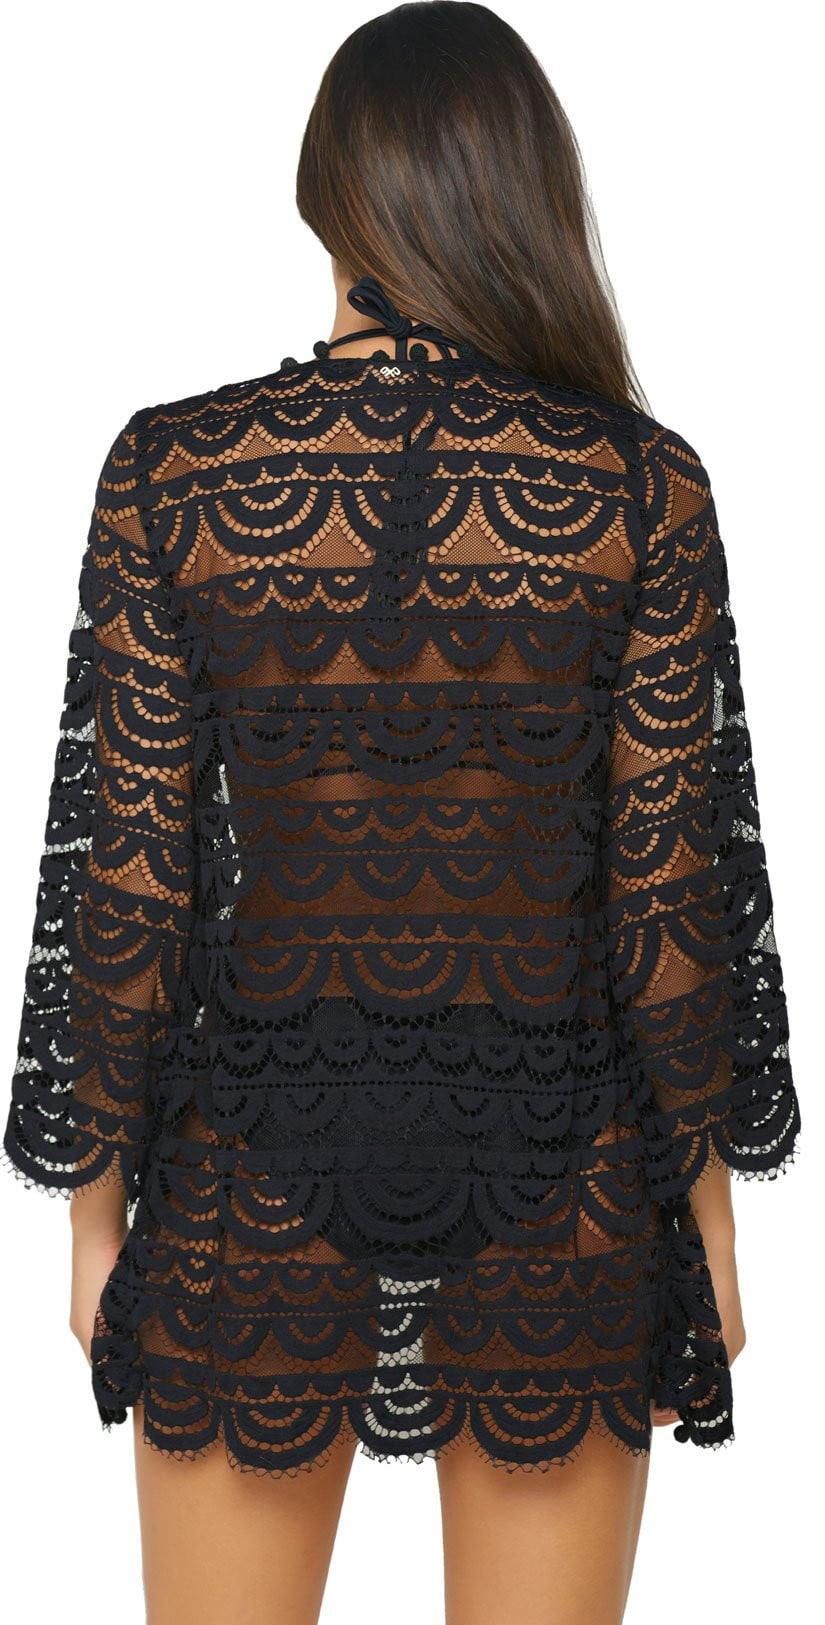 PilyQ Noah Lace Tunic in Black BKG-445D: